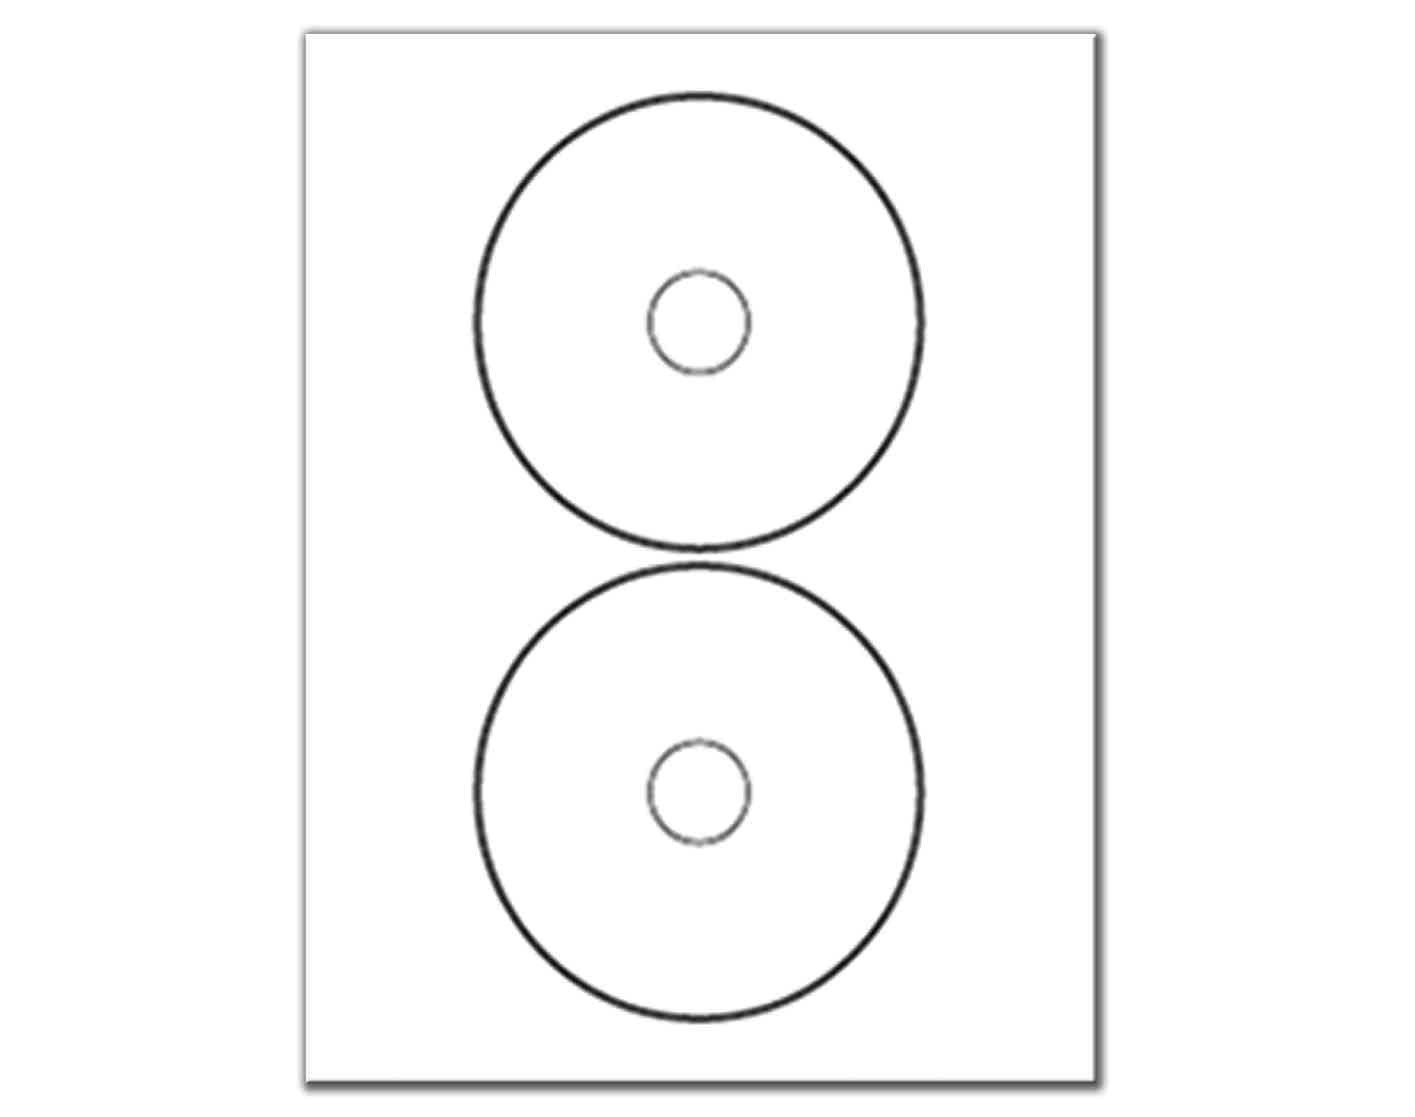 Avery Cd Label Template Avery 5931 Template Word Avery Dvd Label Templates Cd Dvd